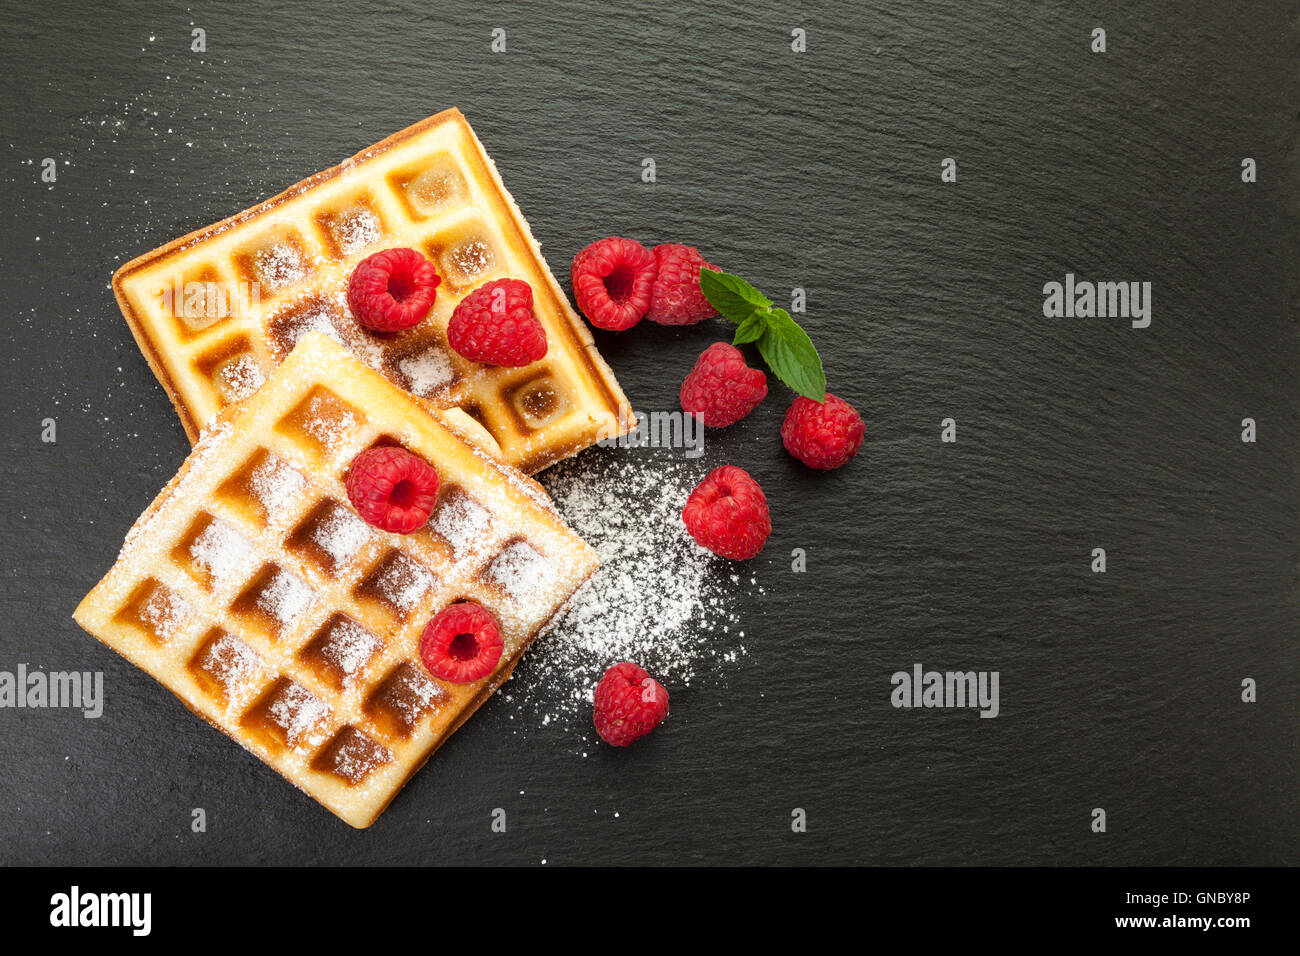 Belgian waffles with raspberries and powdered sugar on black slate platter, top view - Stock Image